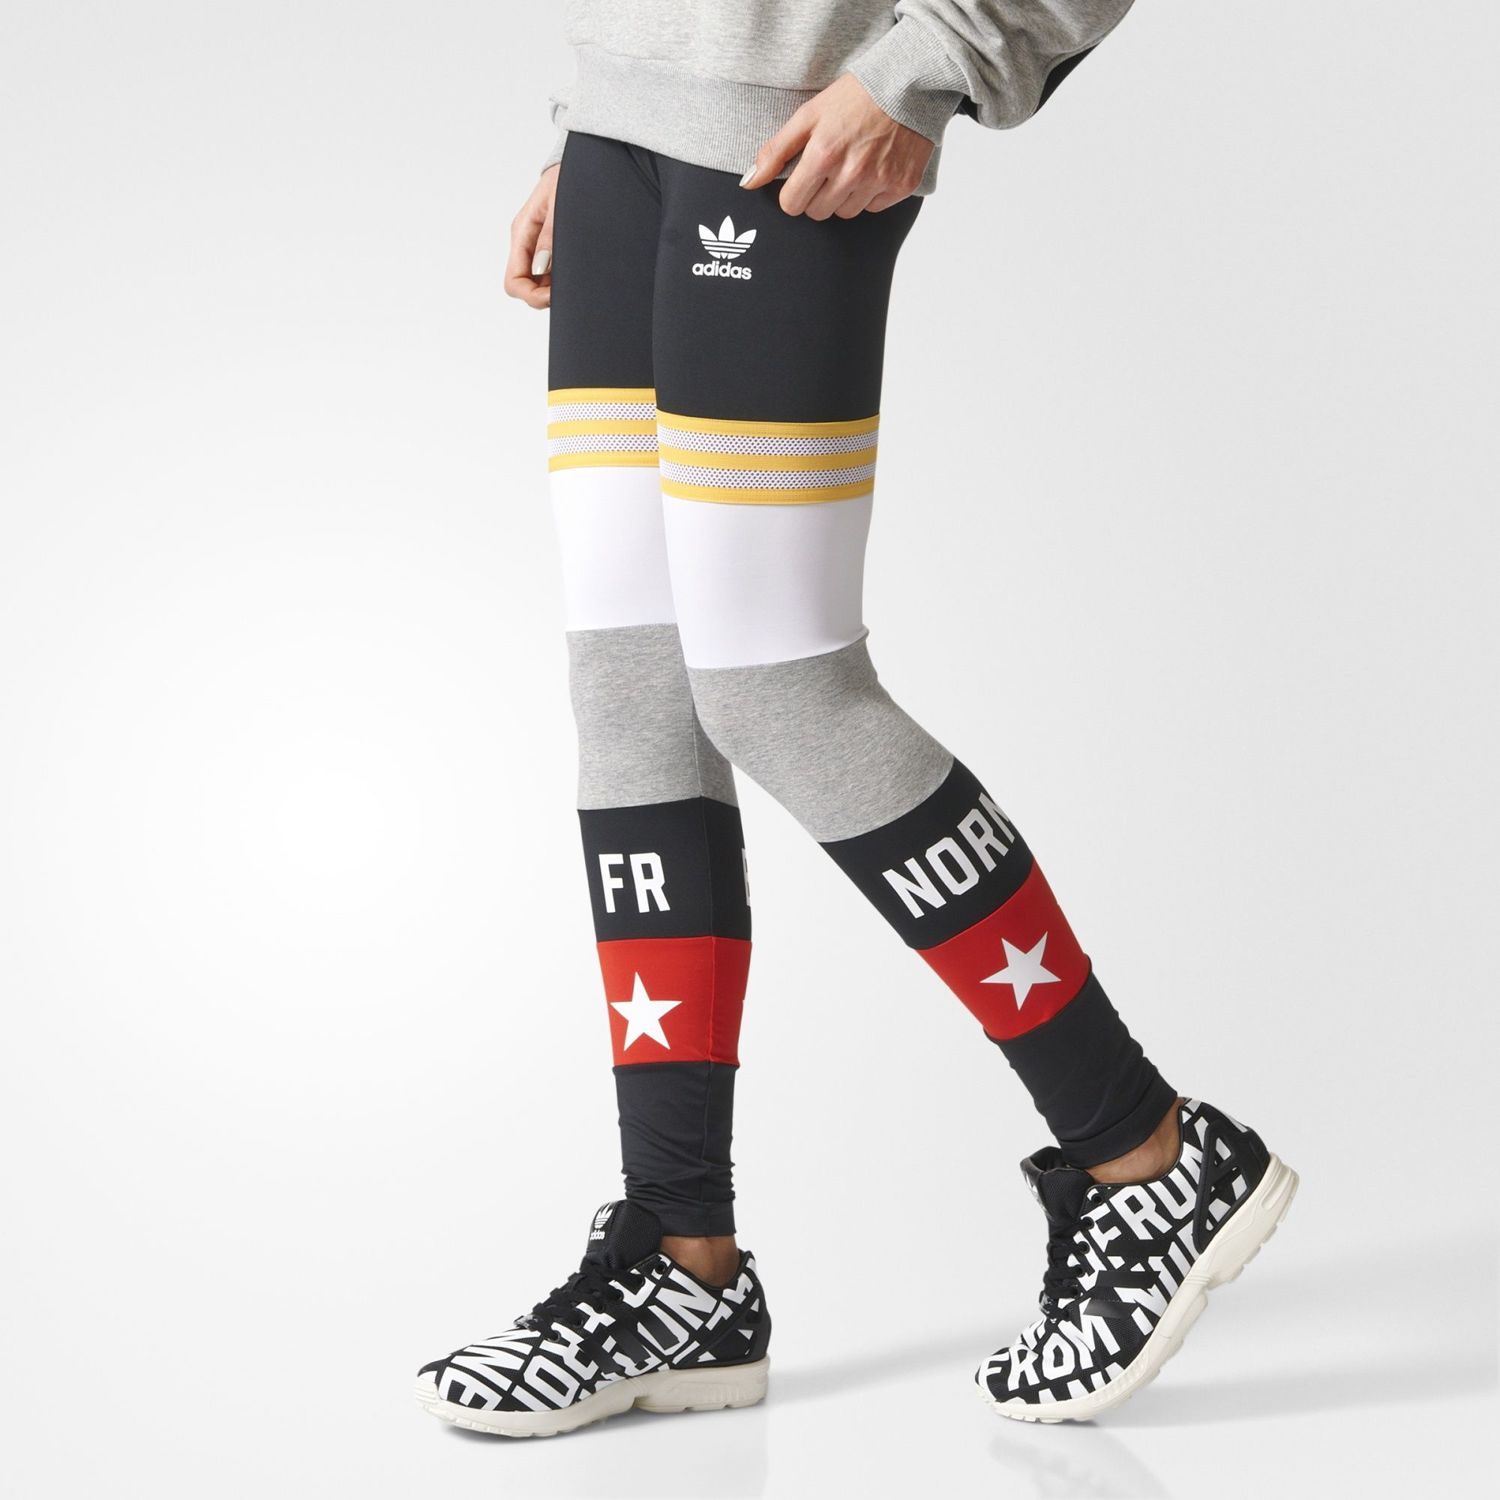 Legginsy sportowe adidas Originals Banned From Normal AY7137